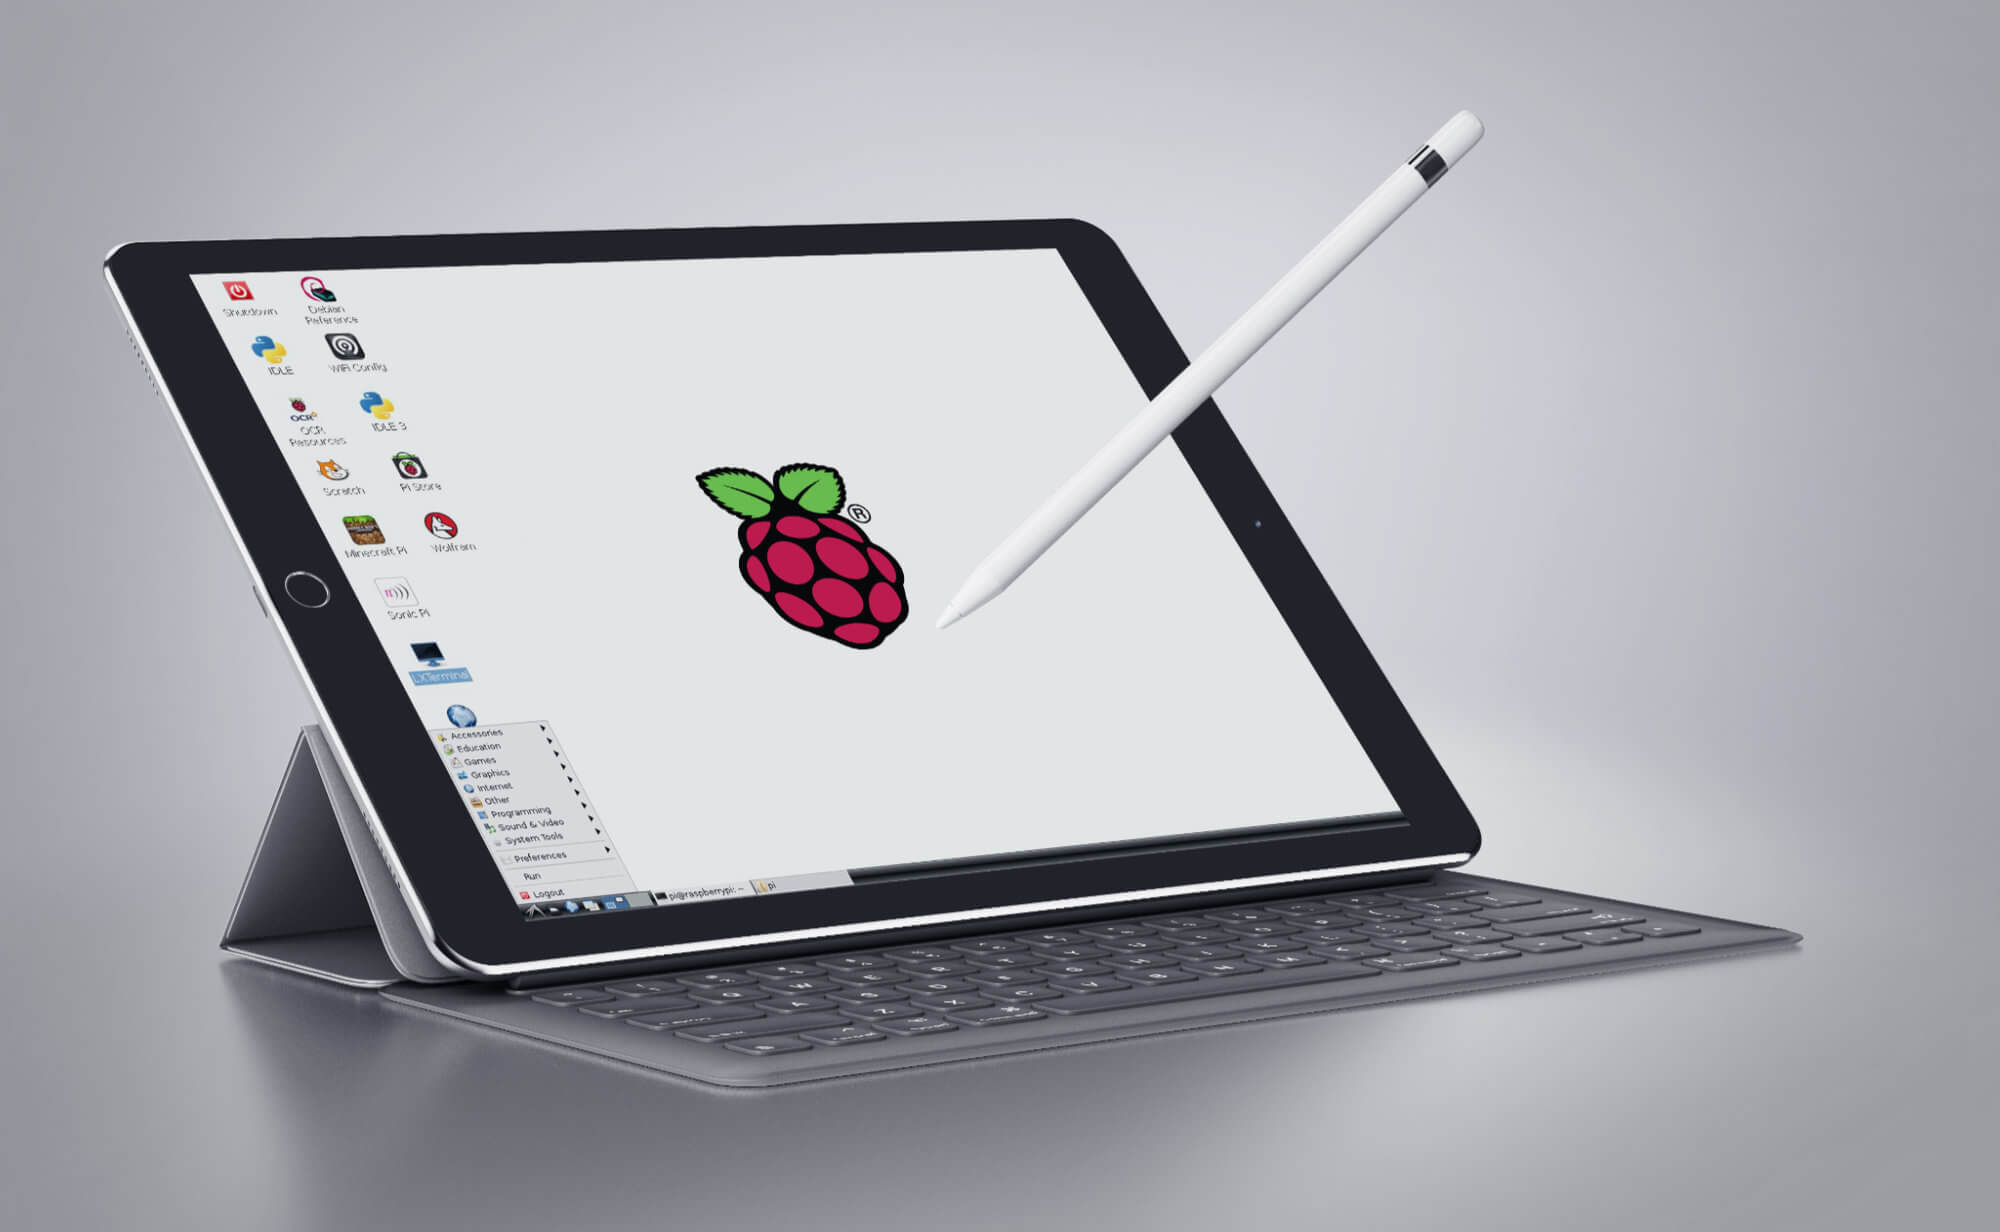 raspberry pi pixel on an ipad pro